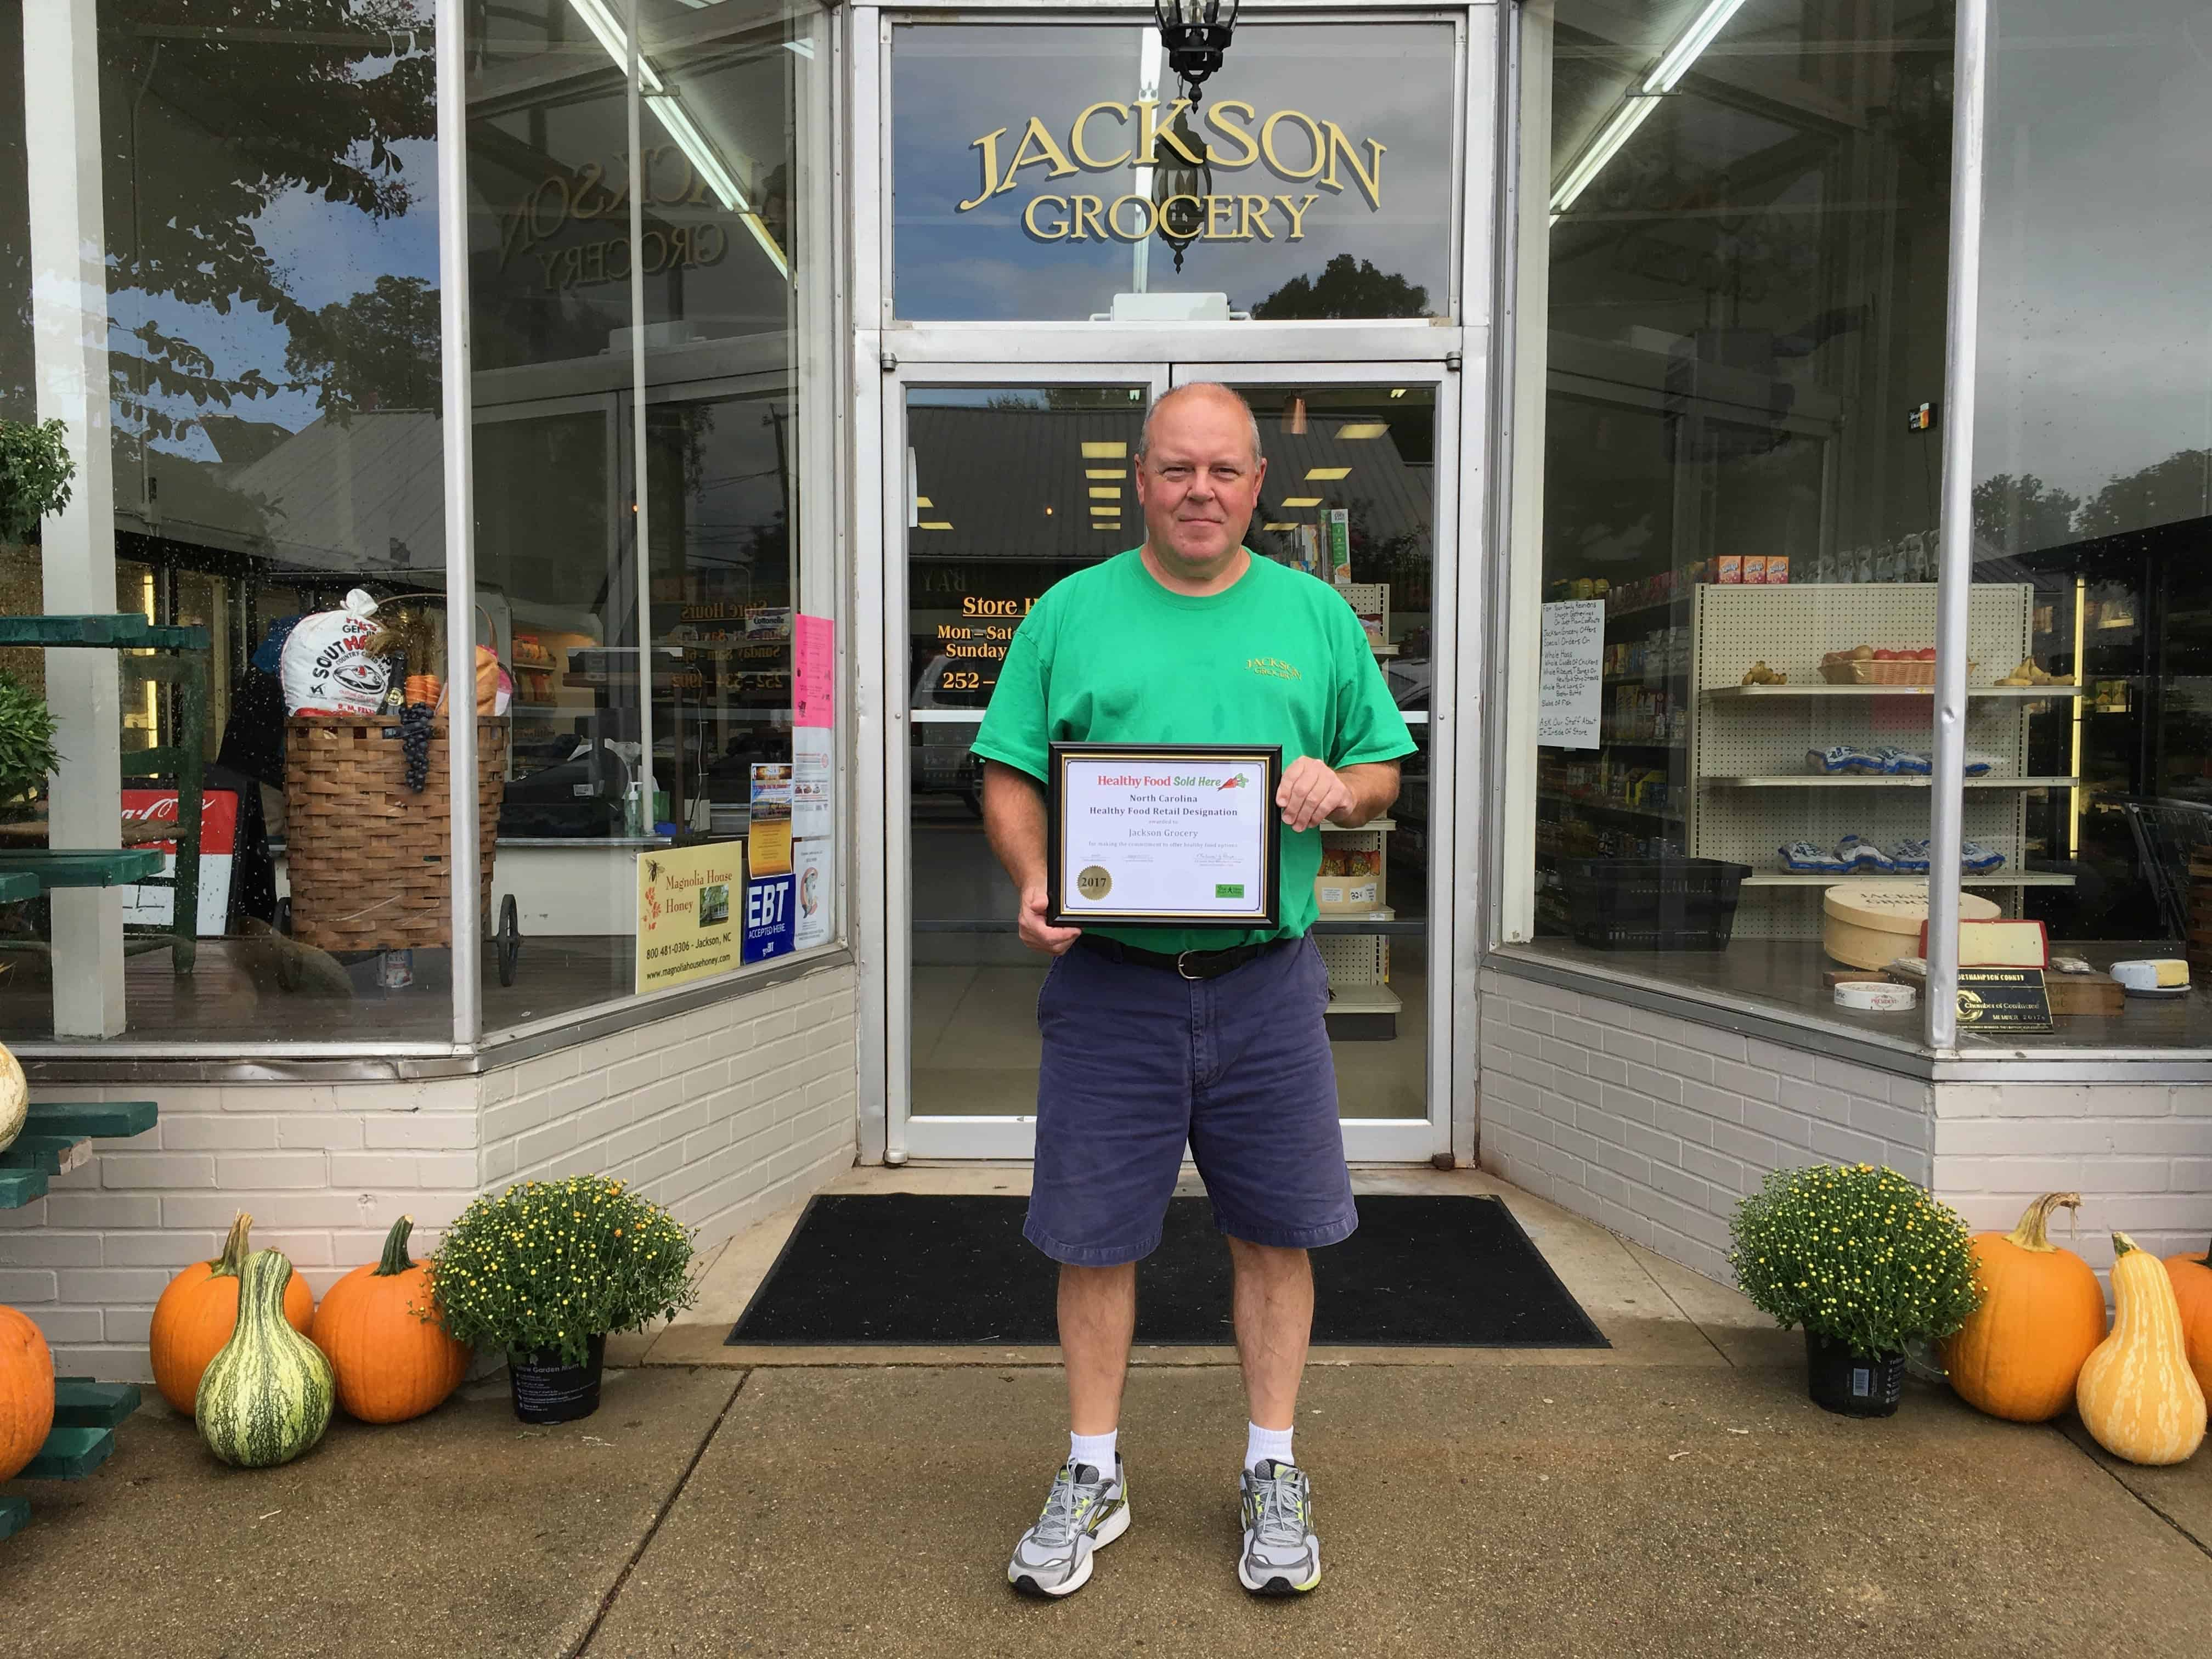 """a man stands infront of a store labeled """"Jackson Grocery"""" and he's proudly holding a certificate"""